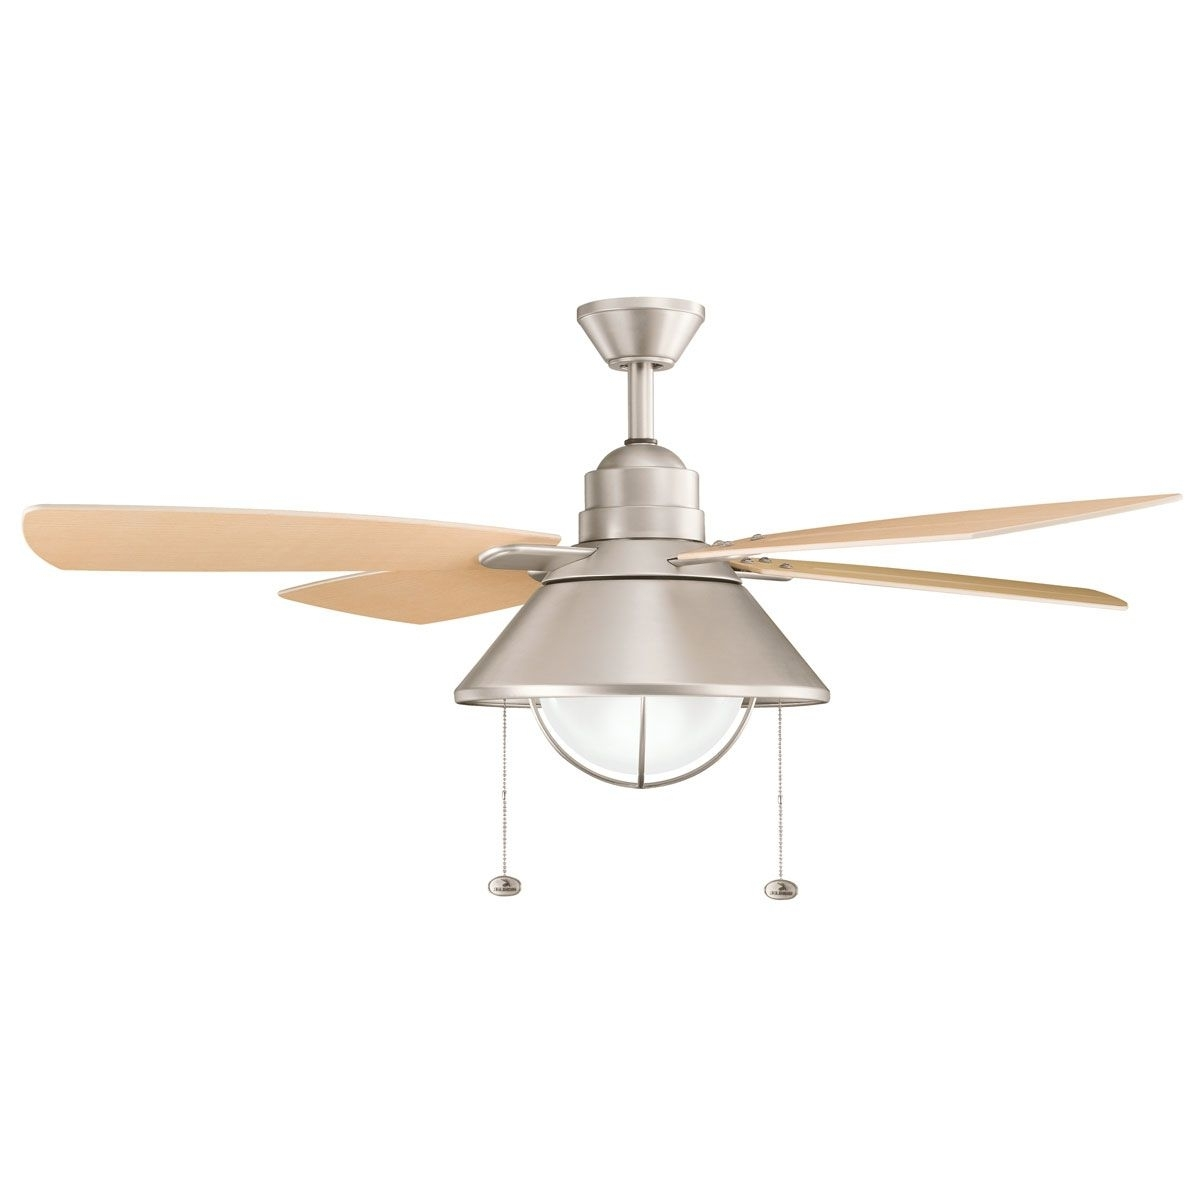 Brushed Nickel Outdoor Ceiling Fans Regarding 2018 Kichler Fans Seaside Ceiling Fan In Brushed Nickel (View 6 of 20)